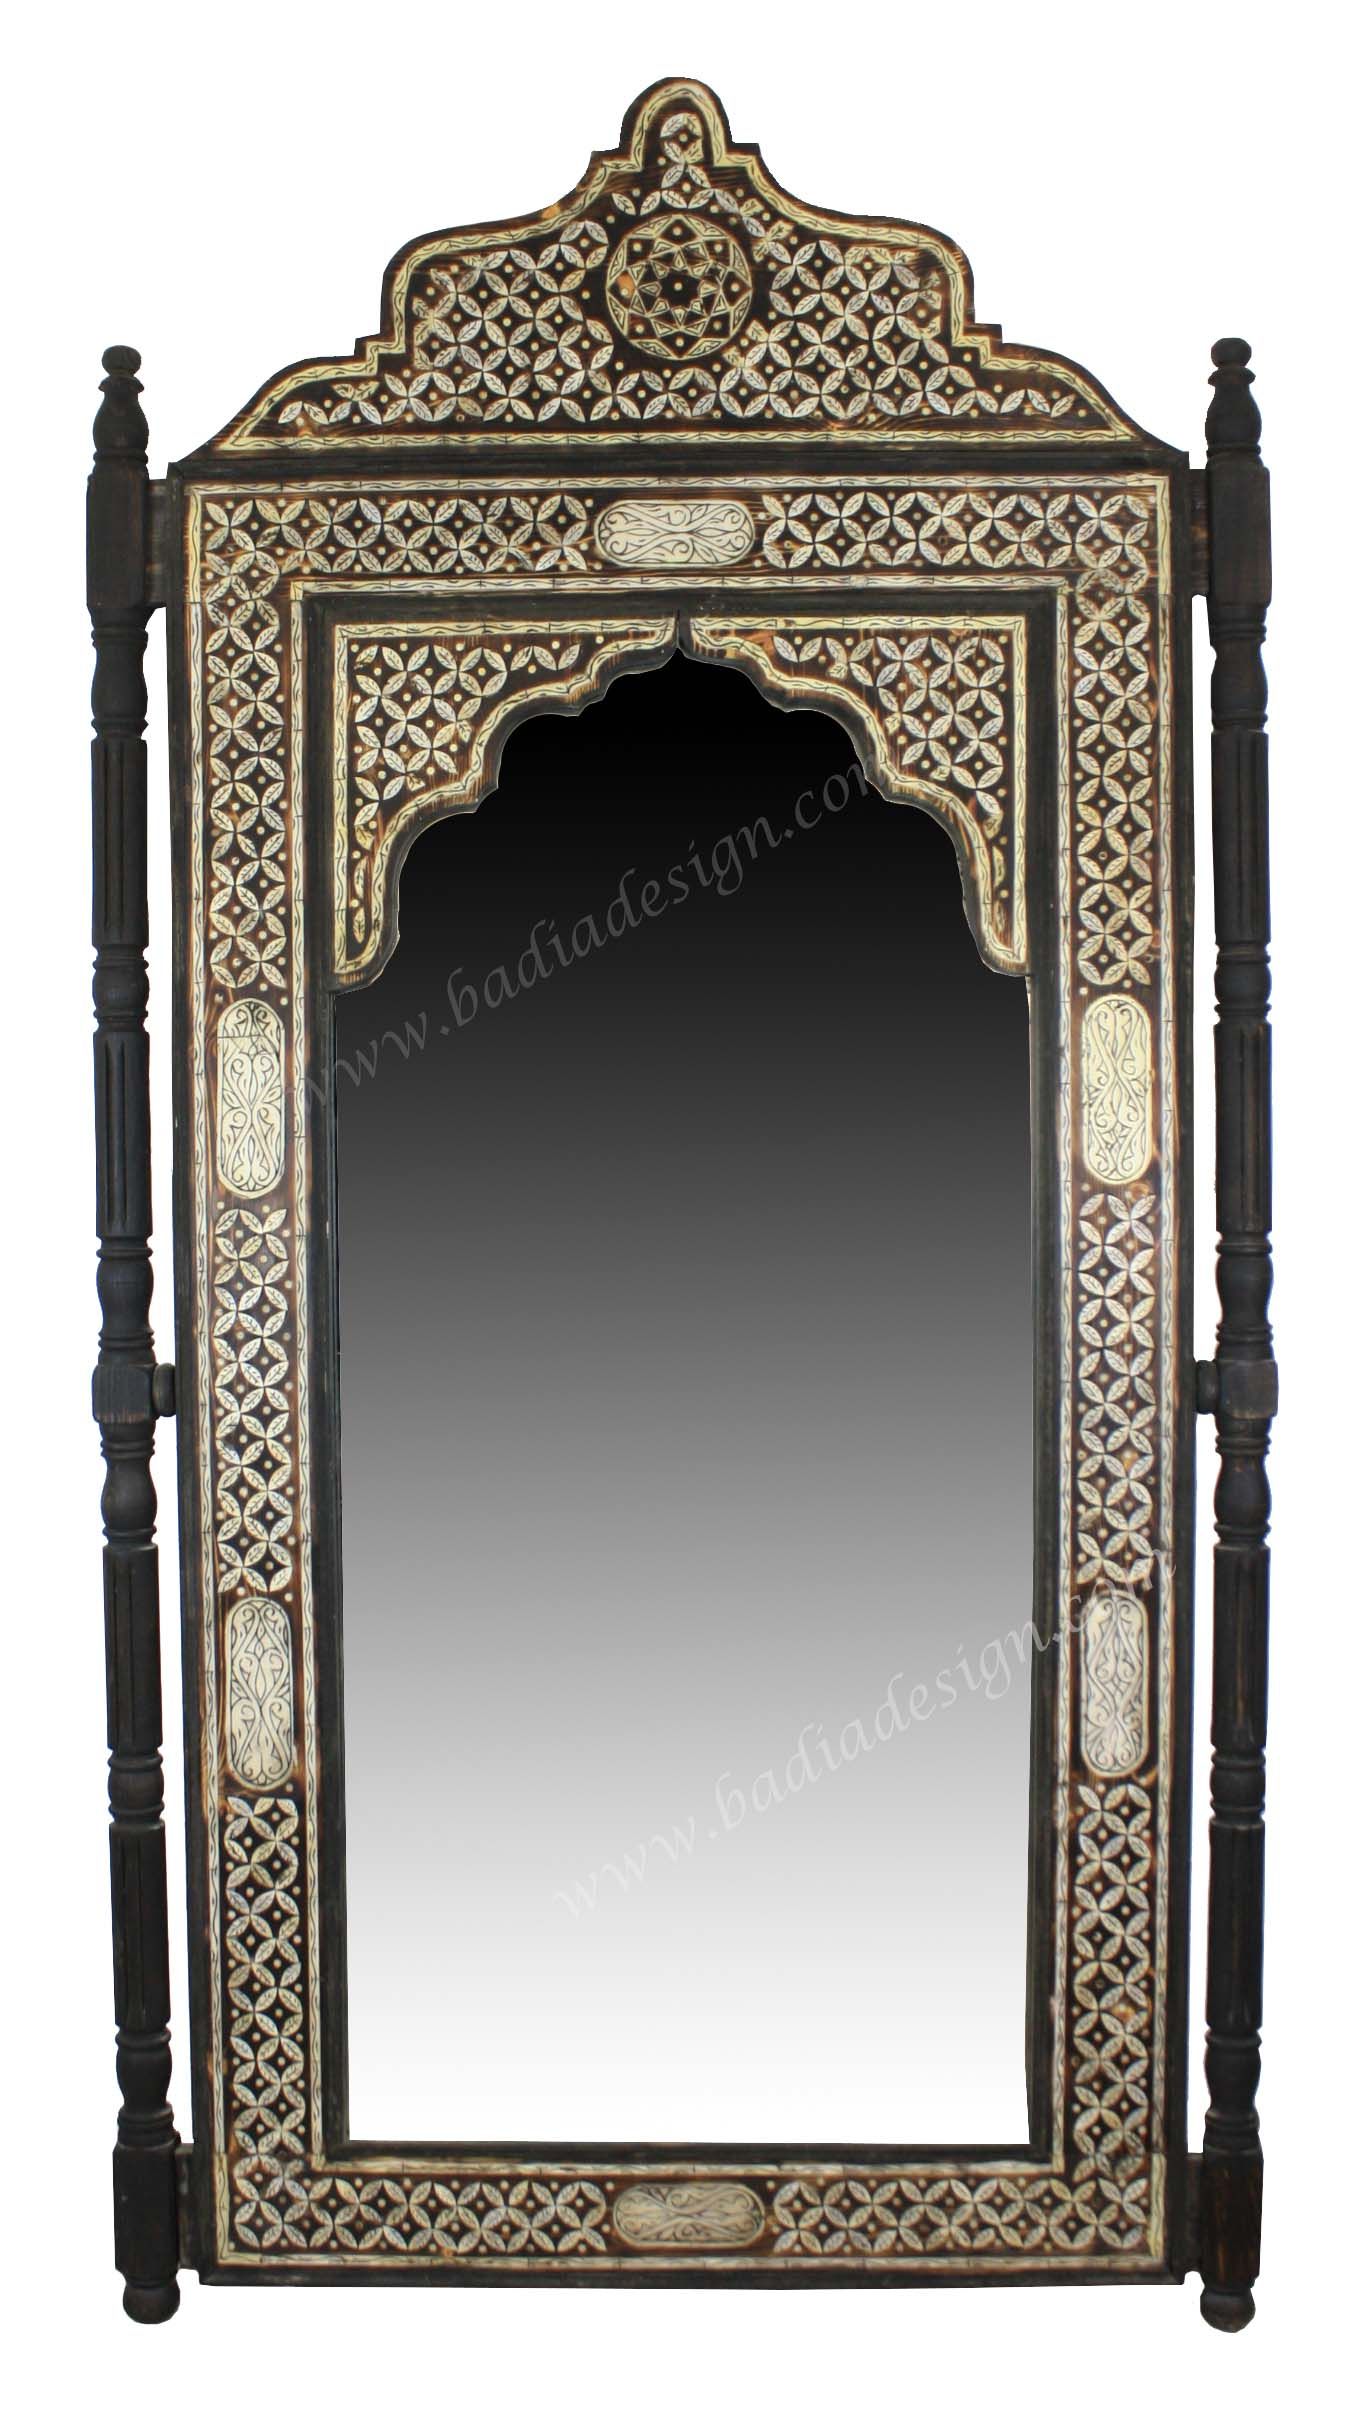 moroccan-large-bone-inlay-mirror-m-mb062-1.jpg